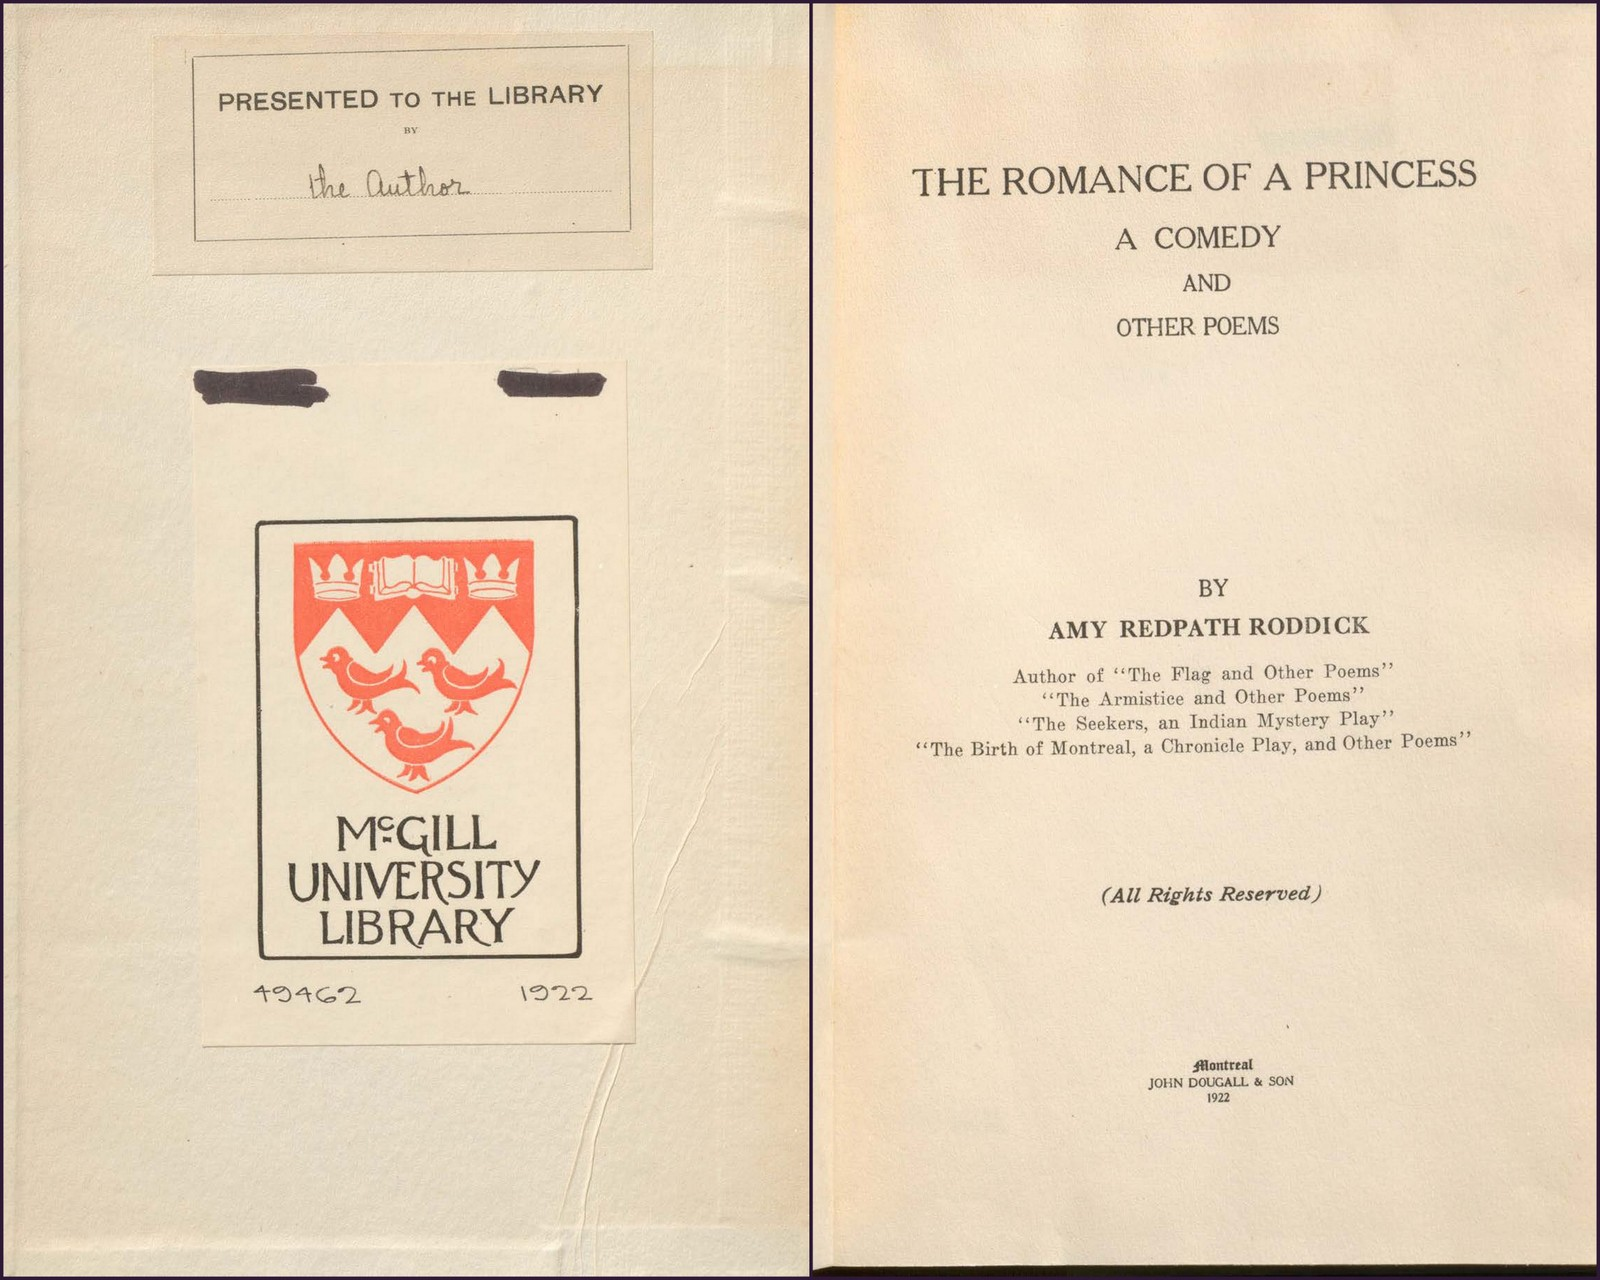 Front inside cover & title page of The romance of a princess : a comedy, and other poems by Amy Redpath Roddick (1922)